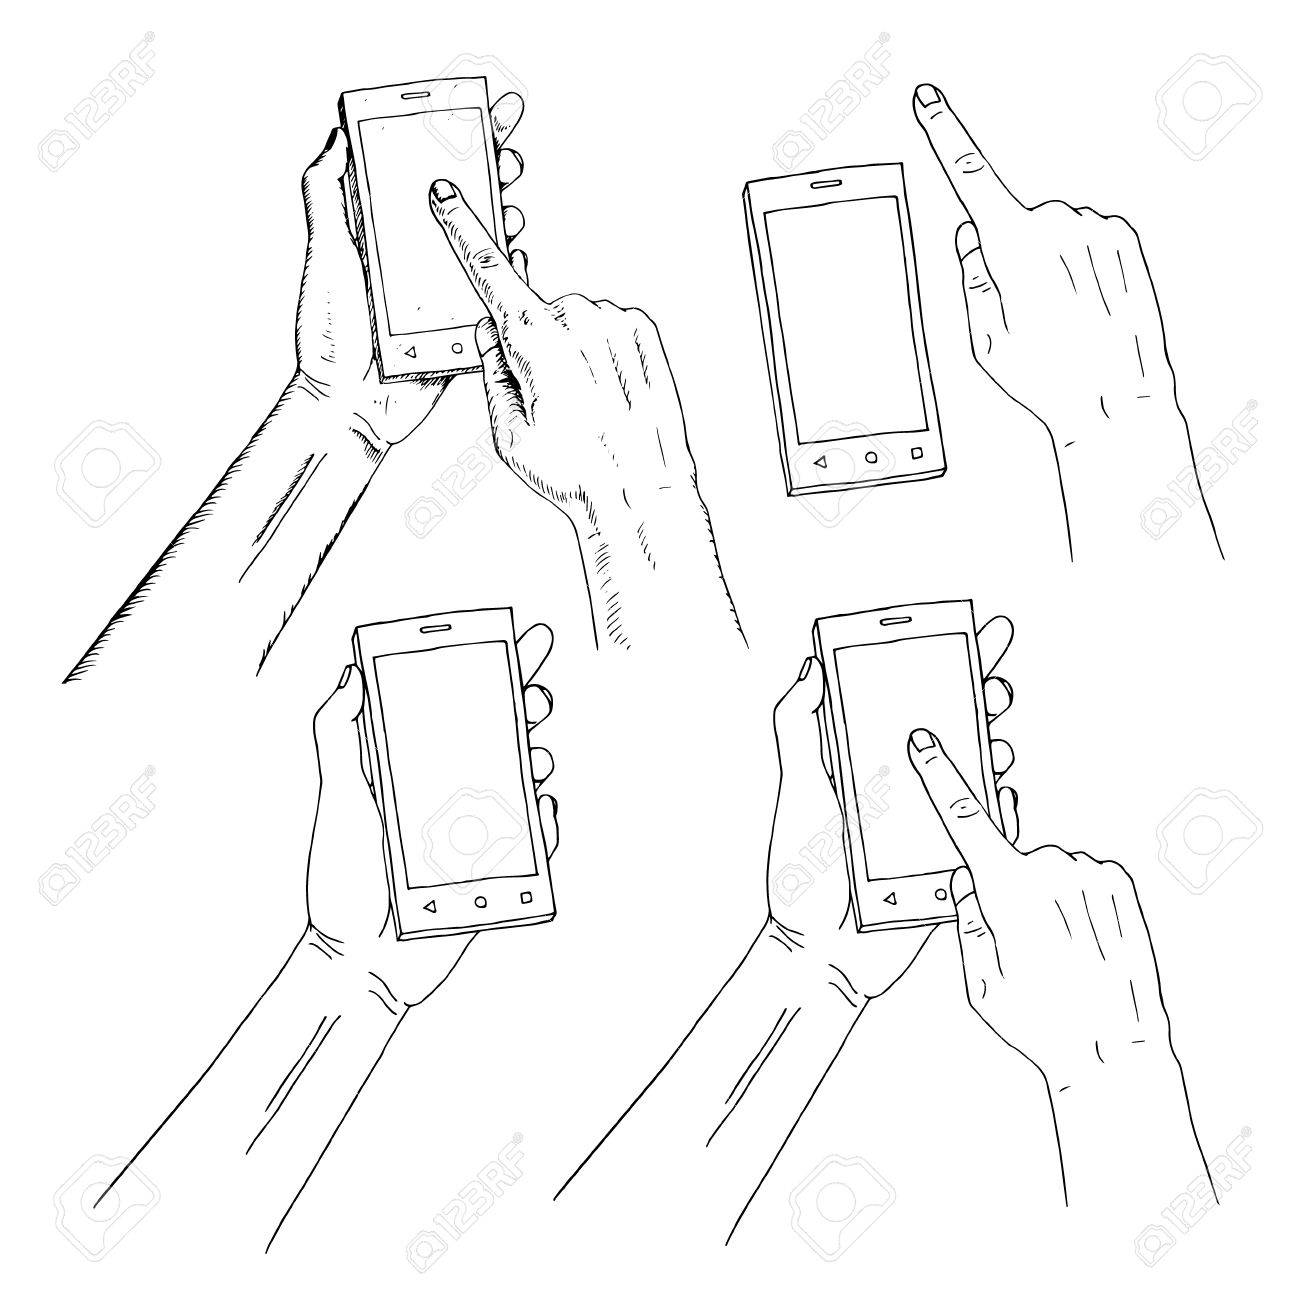 1300x1300 Drawn Hand Holding Phone. Finger On Phone Pressing On Screen